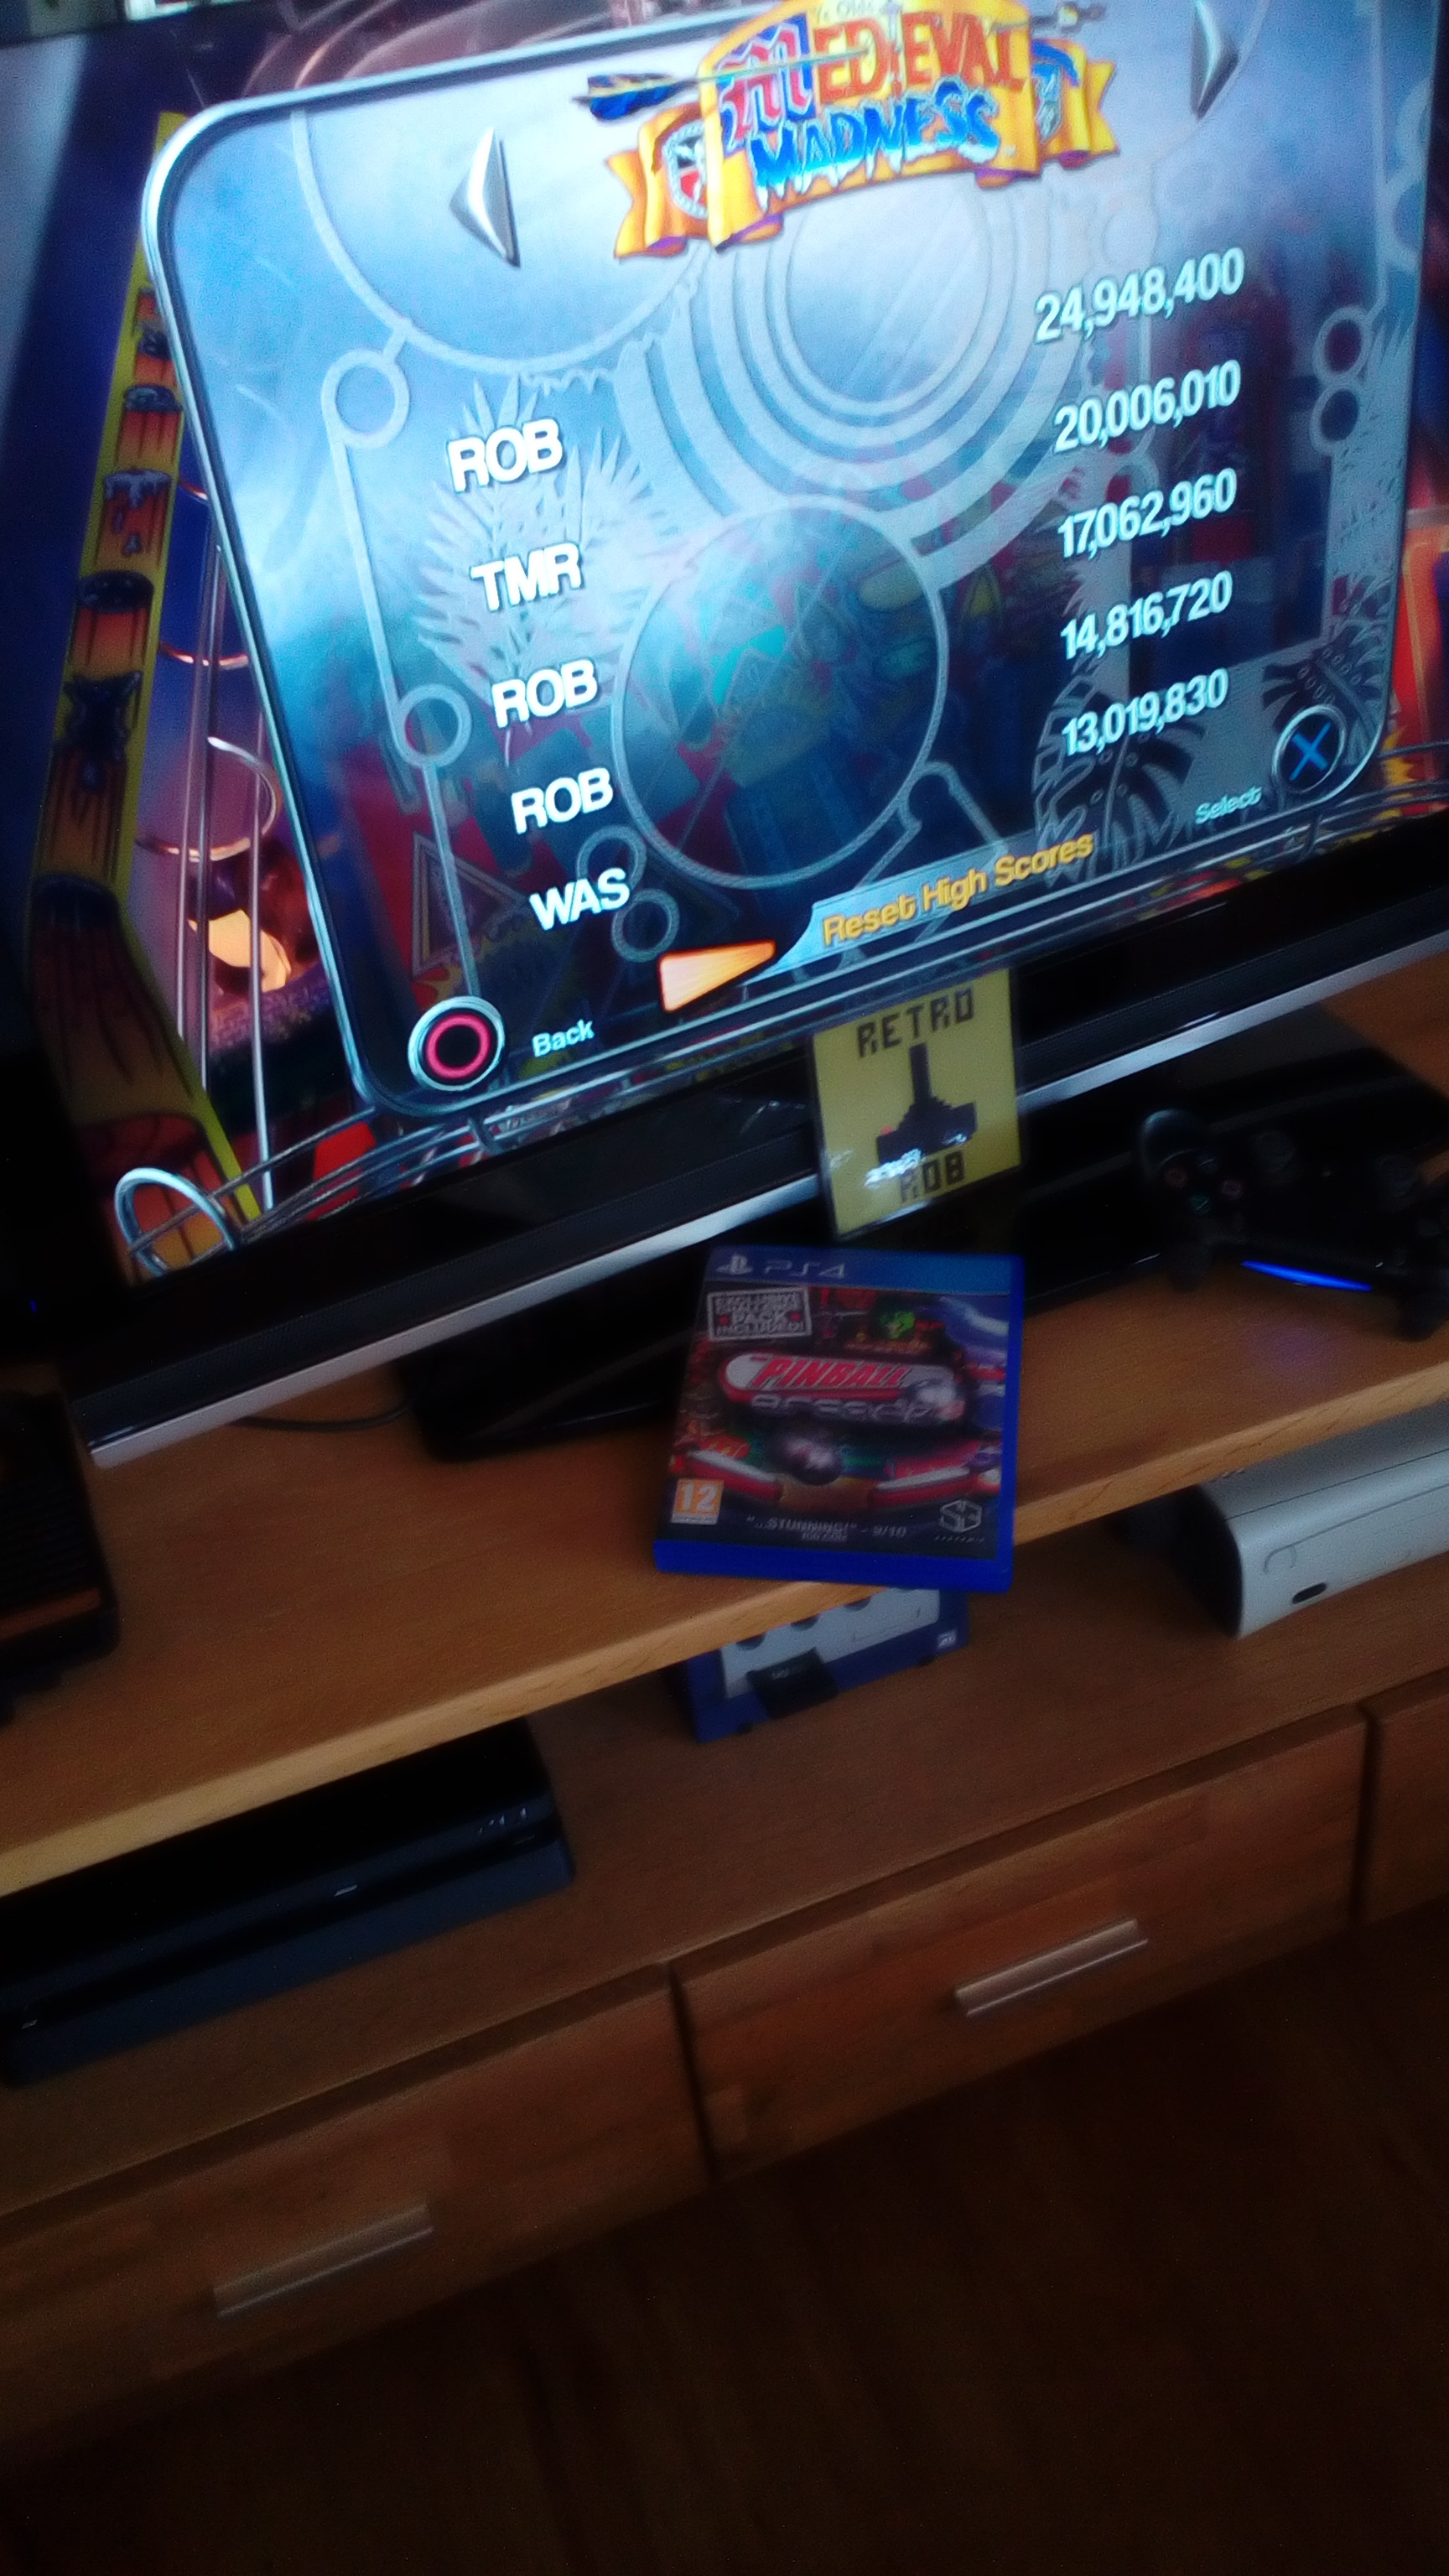 RetroRob: Pinball Arcade: Medieval Madness (Playstation 4) 24,948,400 points on 2020-04-05 06:54:47